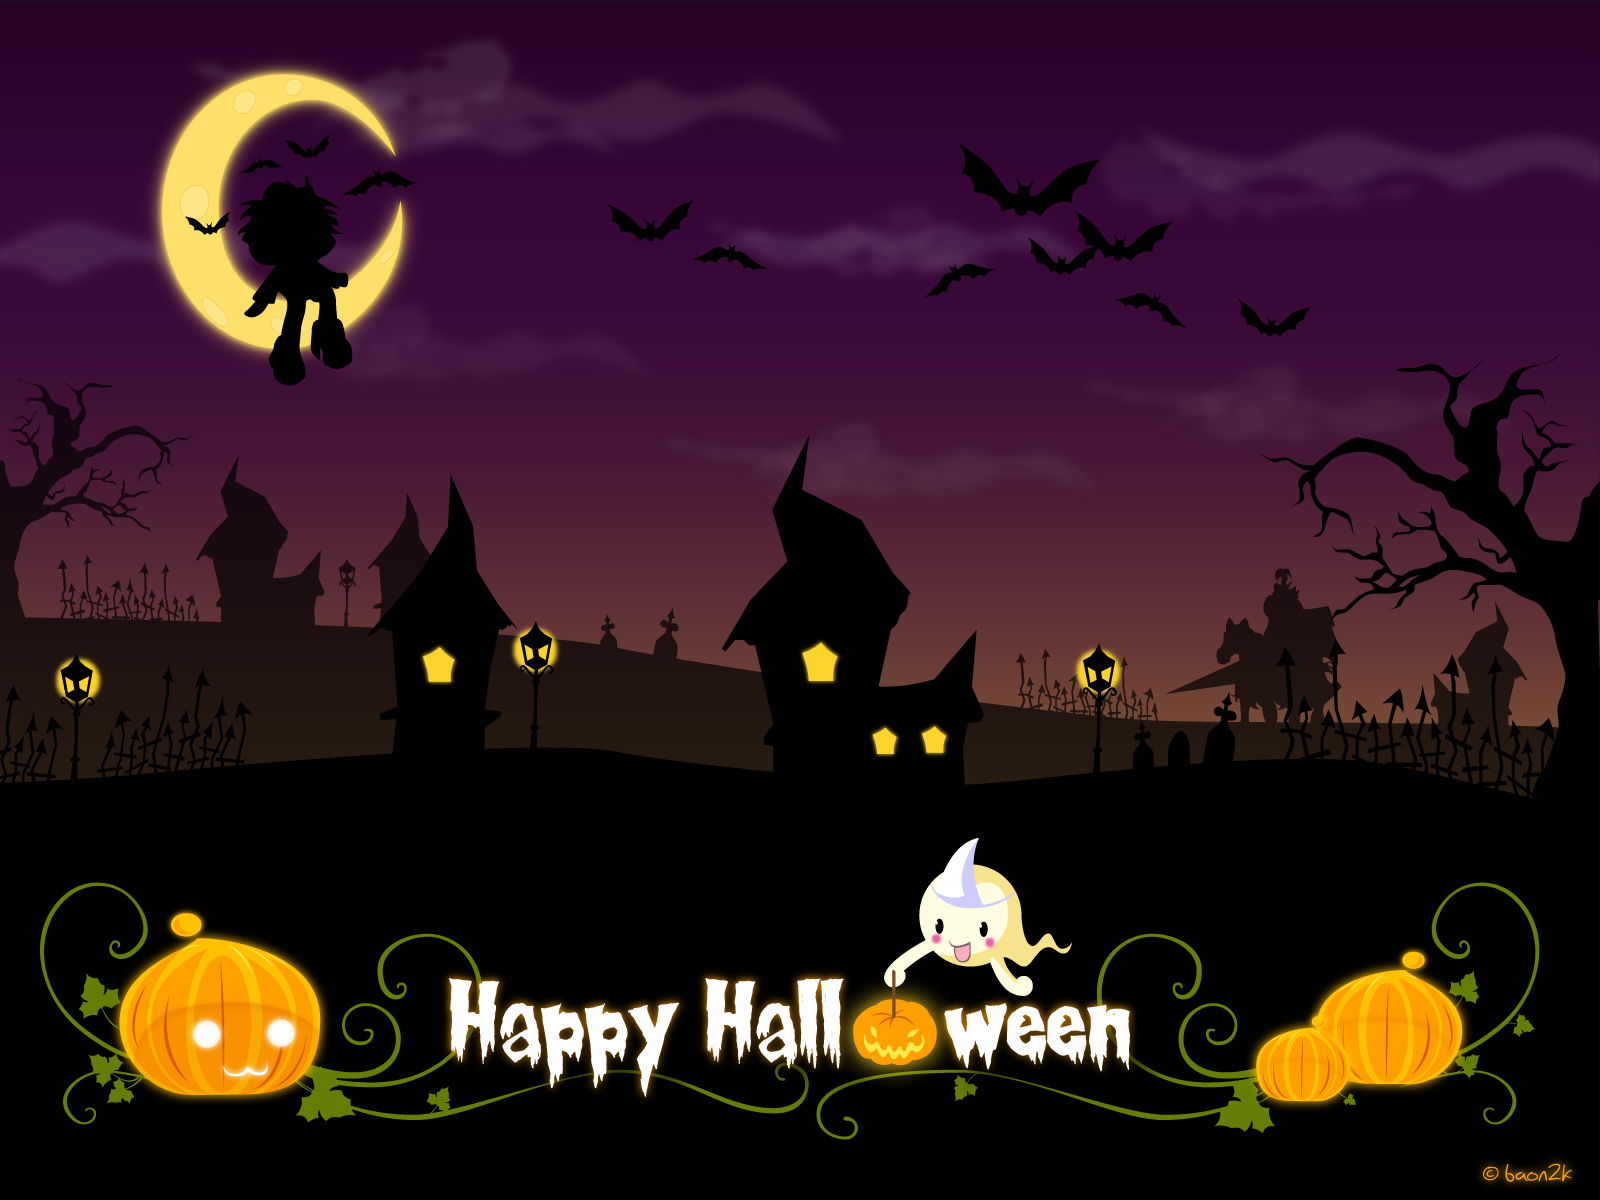 Download Halloween Wallpapers 2011 to Welcome the Ghost Festival 1600x1200